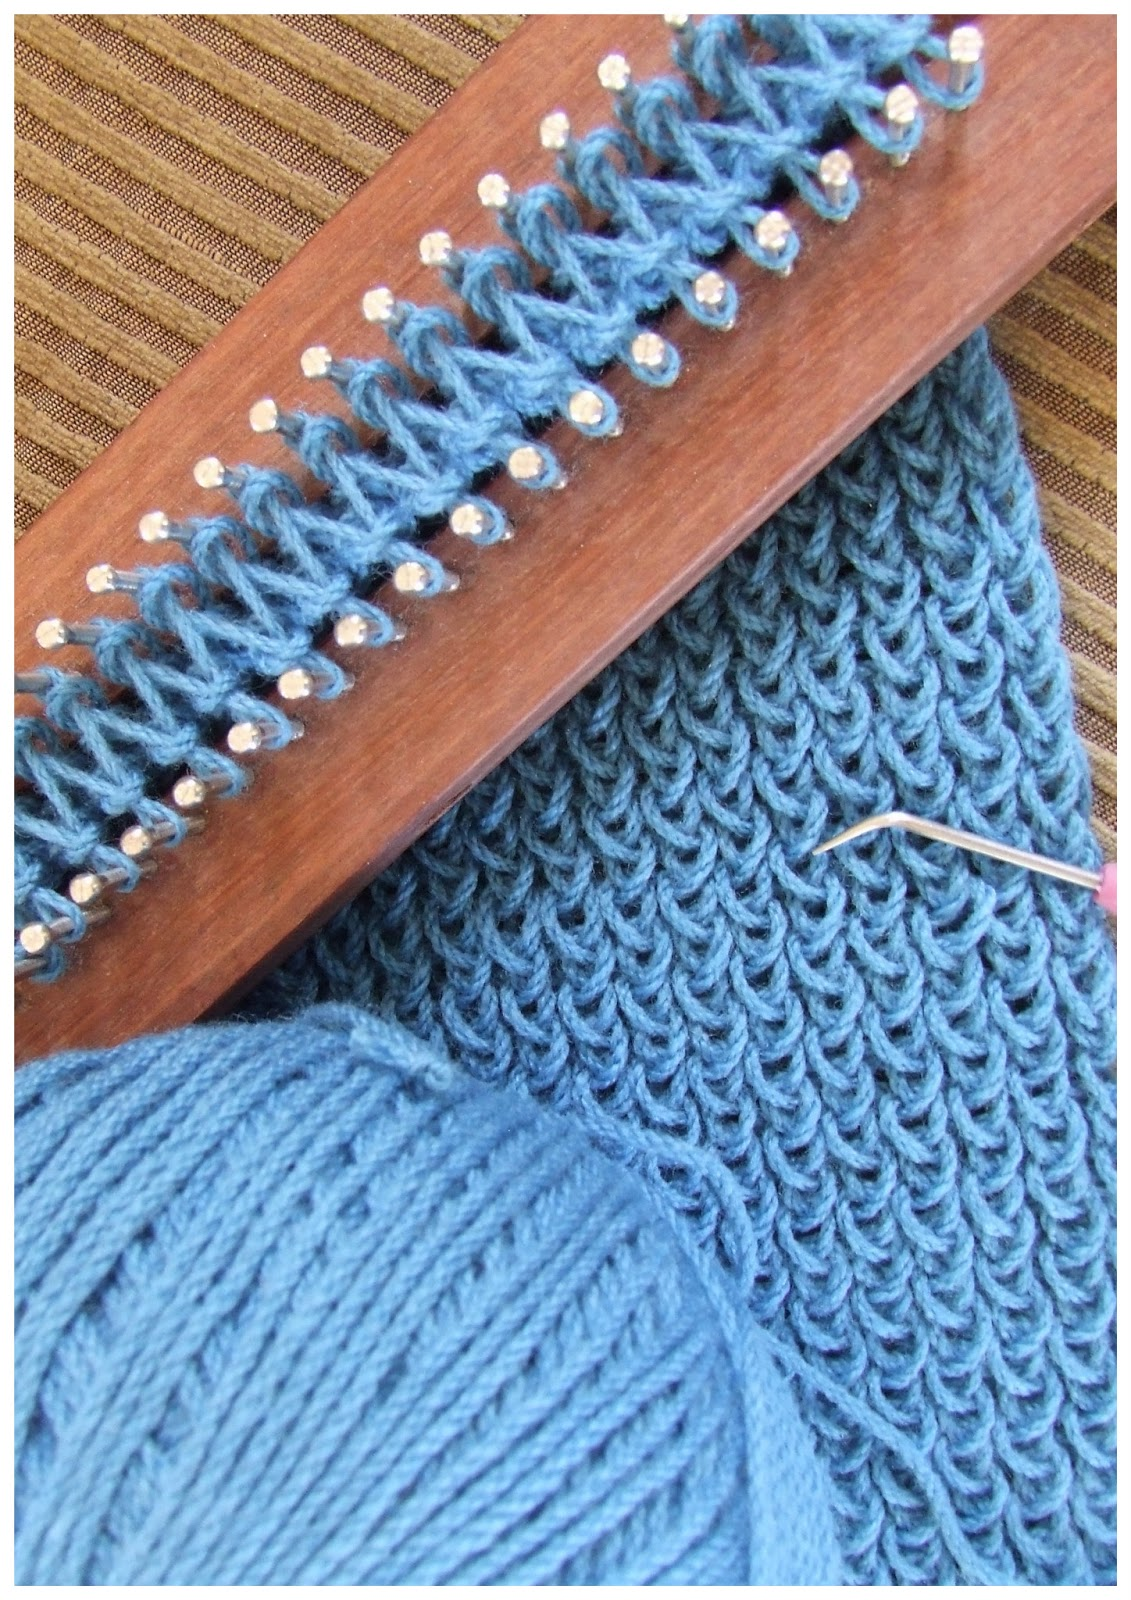 Knitting Stitches On A Loom : FitzBirch Crafts: Loom Knitting